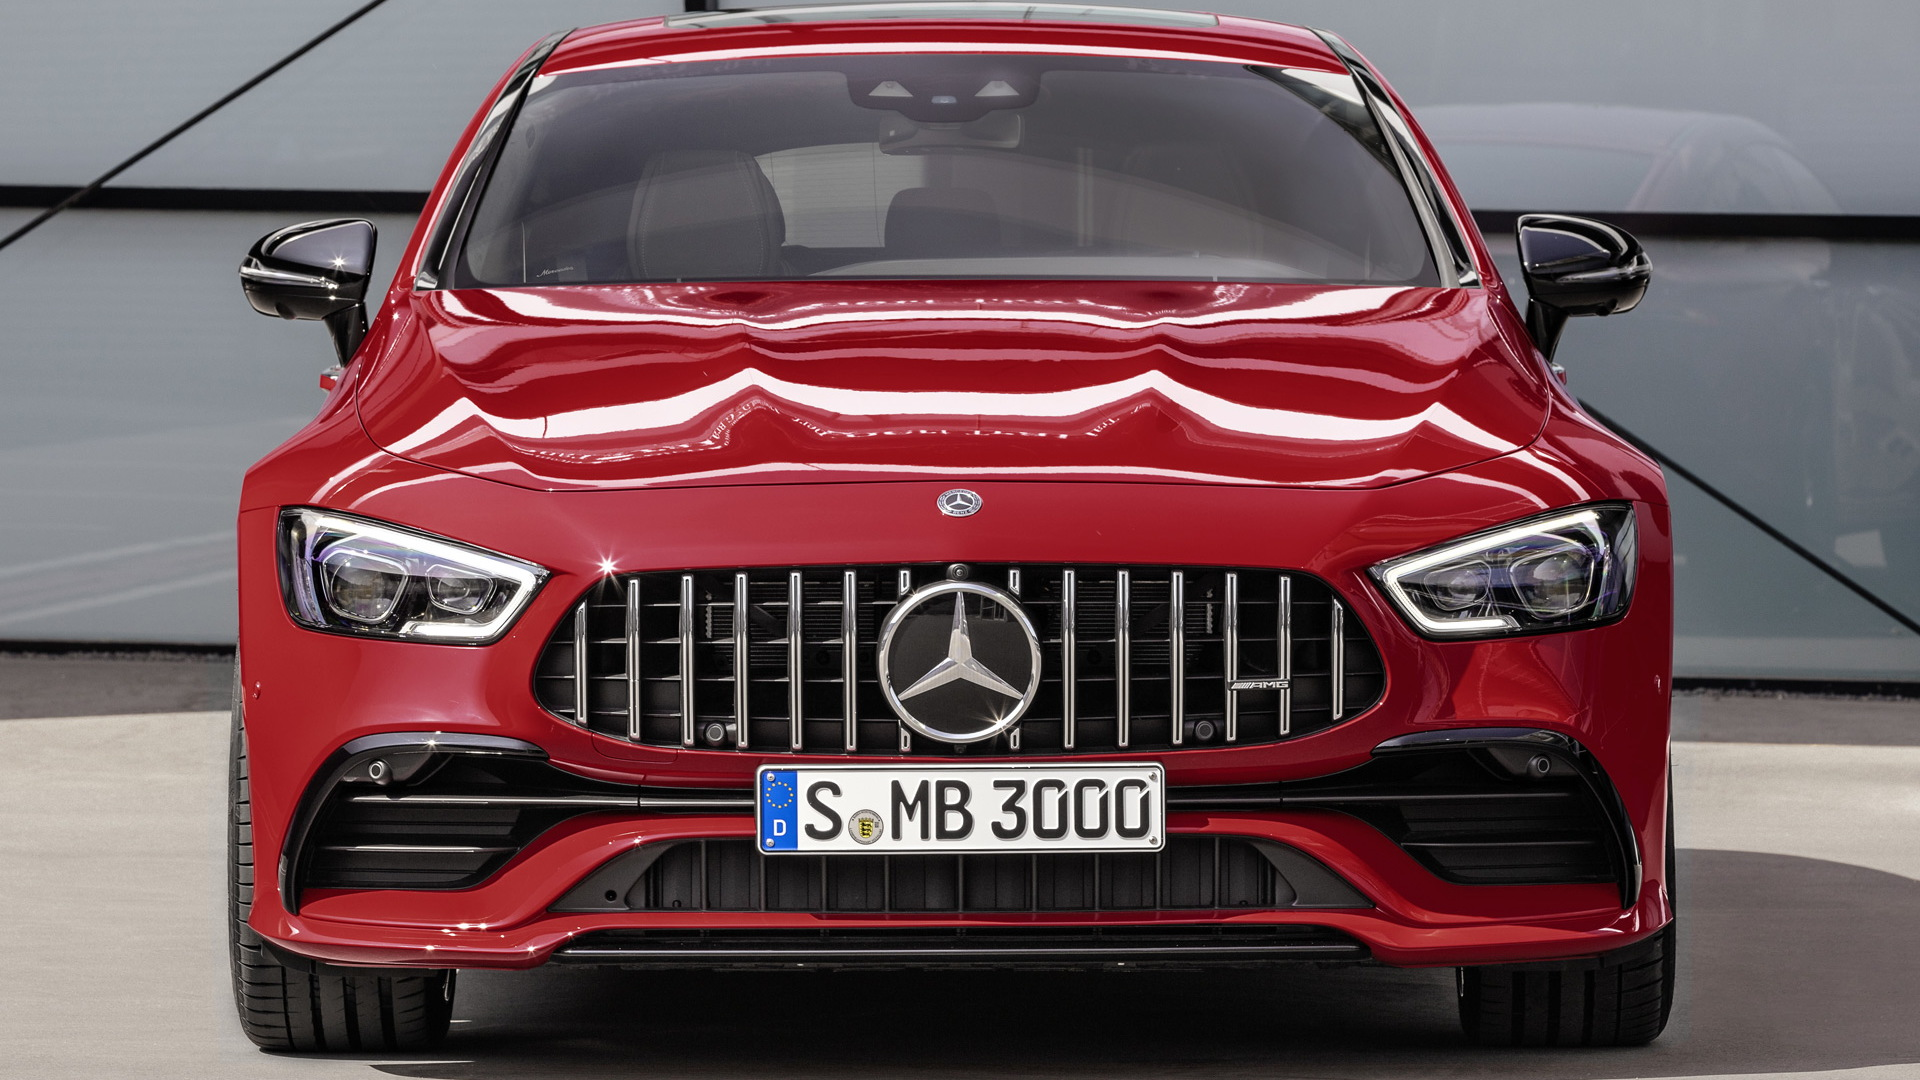 2019 Mercedes-AMG GT 43 4-Door Coupe